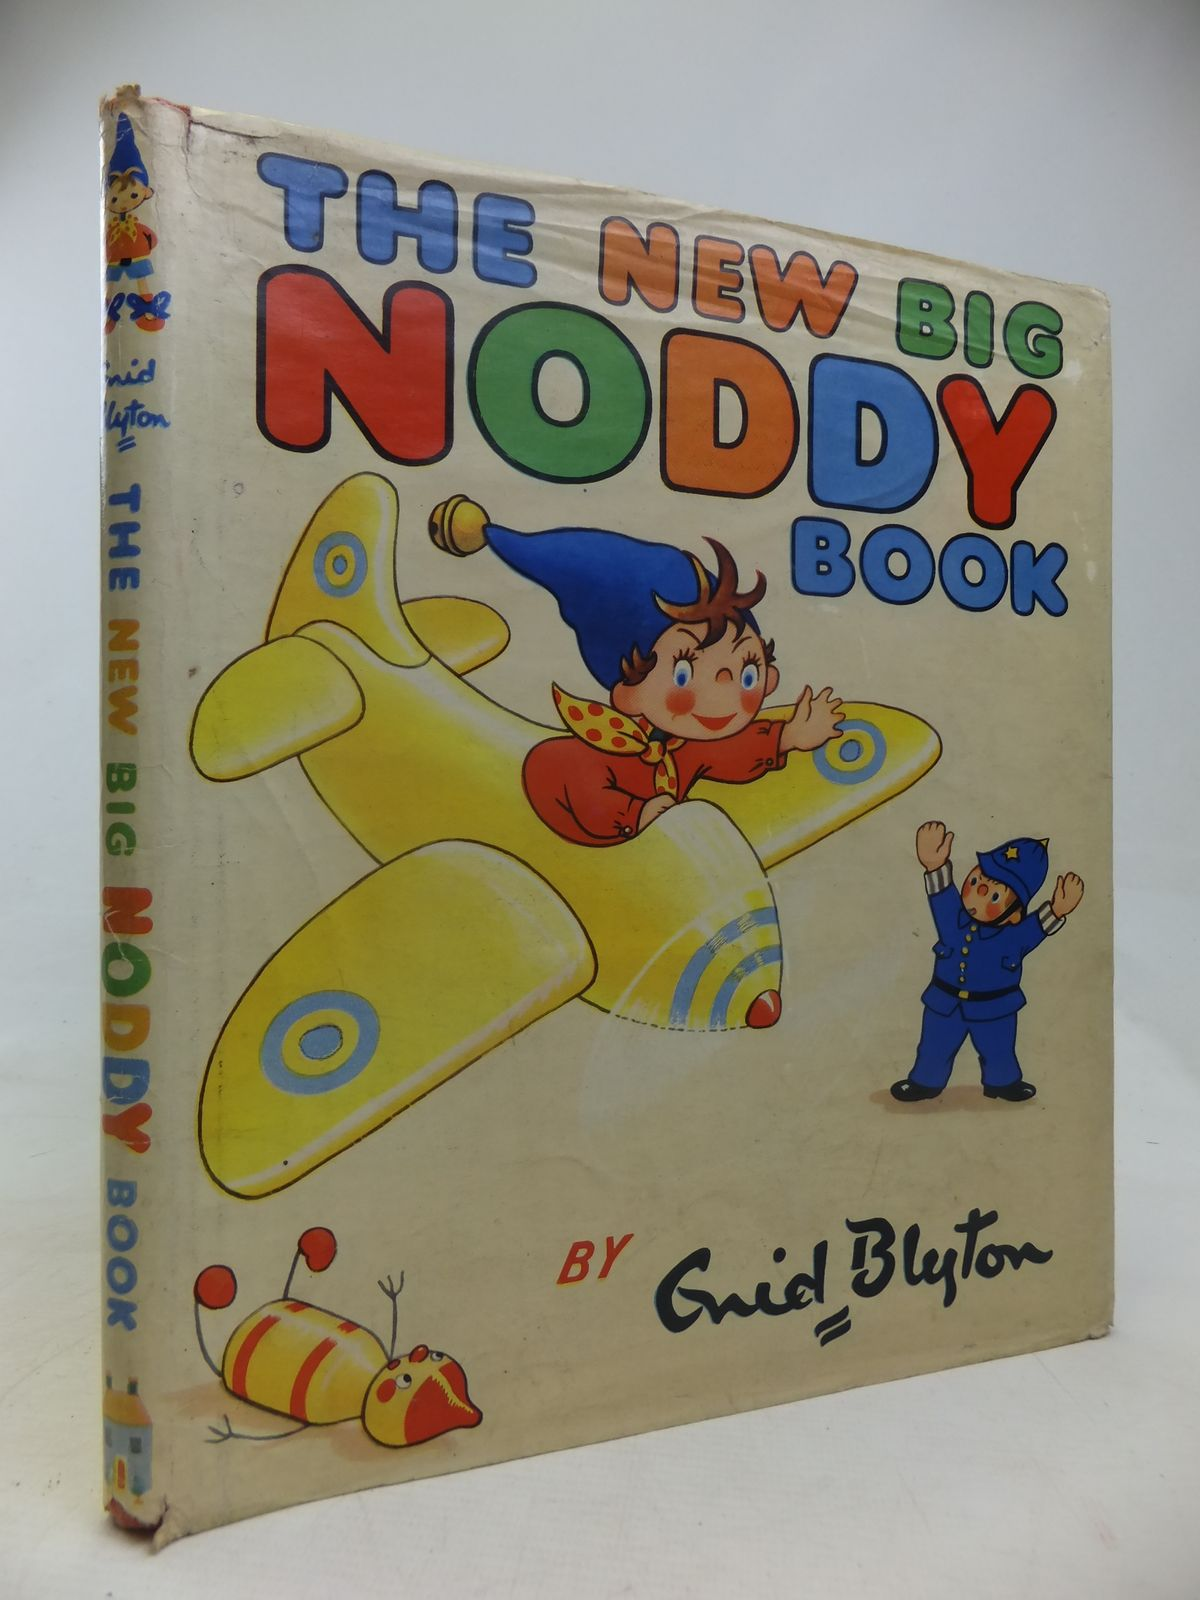 Photo of THE NEW BIG NODDY BOOK written by Blyton, Enid illustrated by Beek,  published by Sampson Low, Marston & Co. Ltd., D.V. Publications Ltd. (STOCK CODE: 2116910)  for sale by Stella & Rose's Books